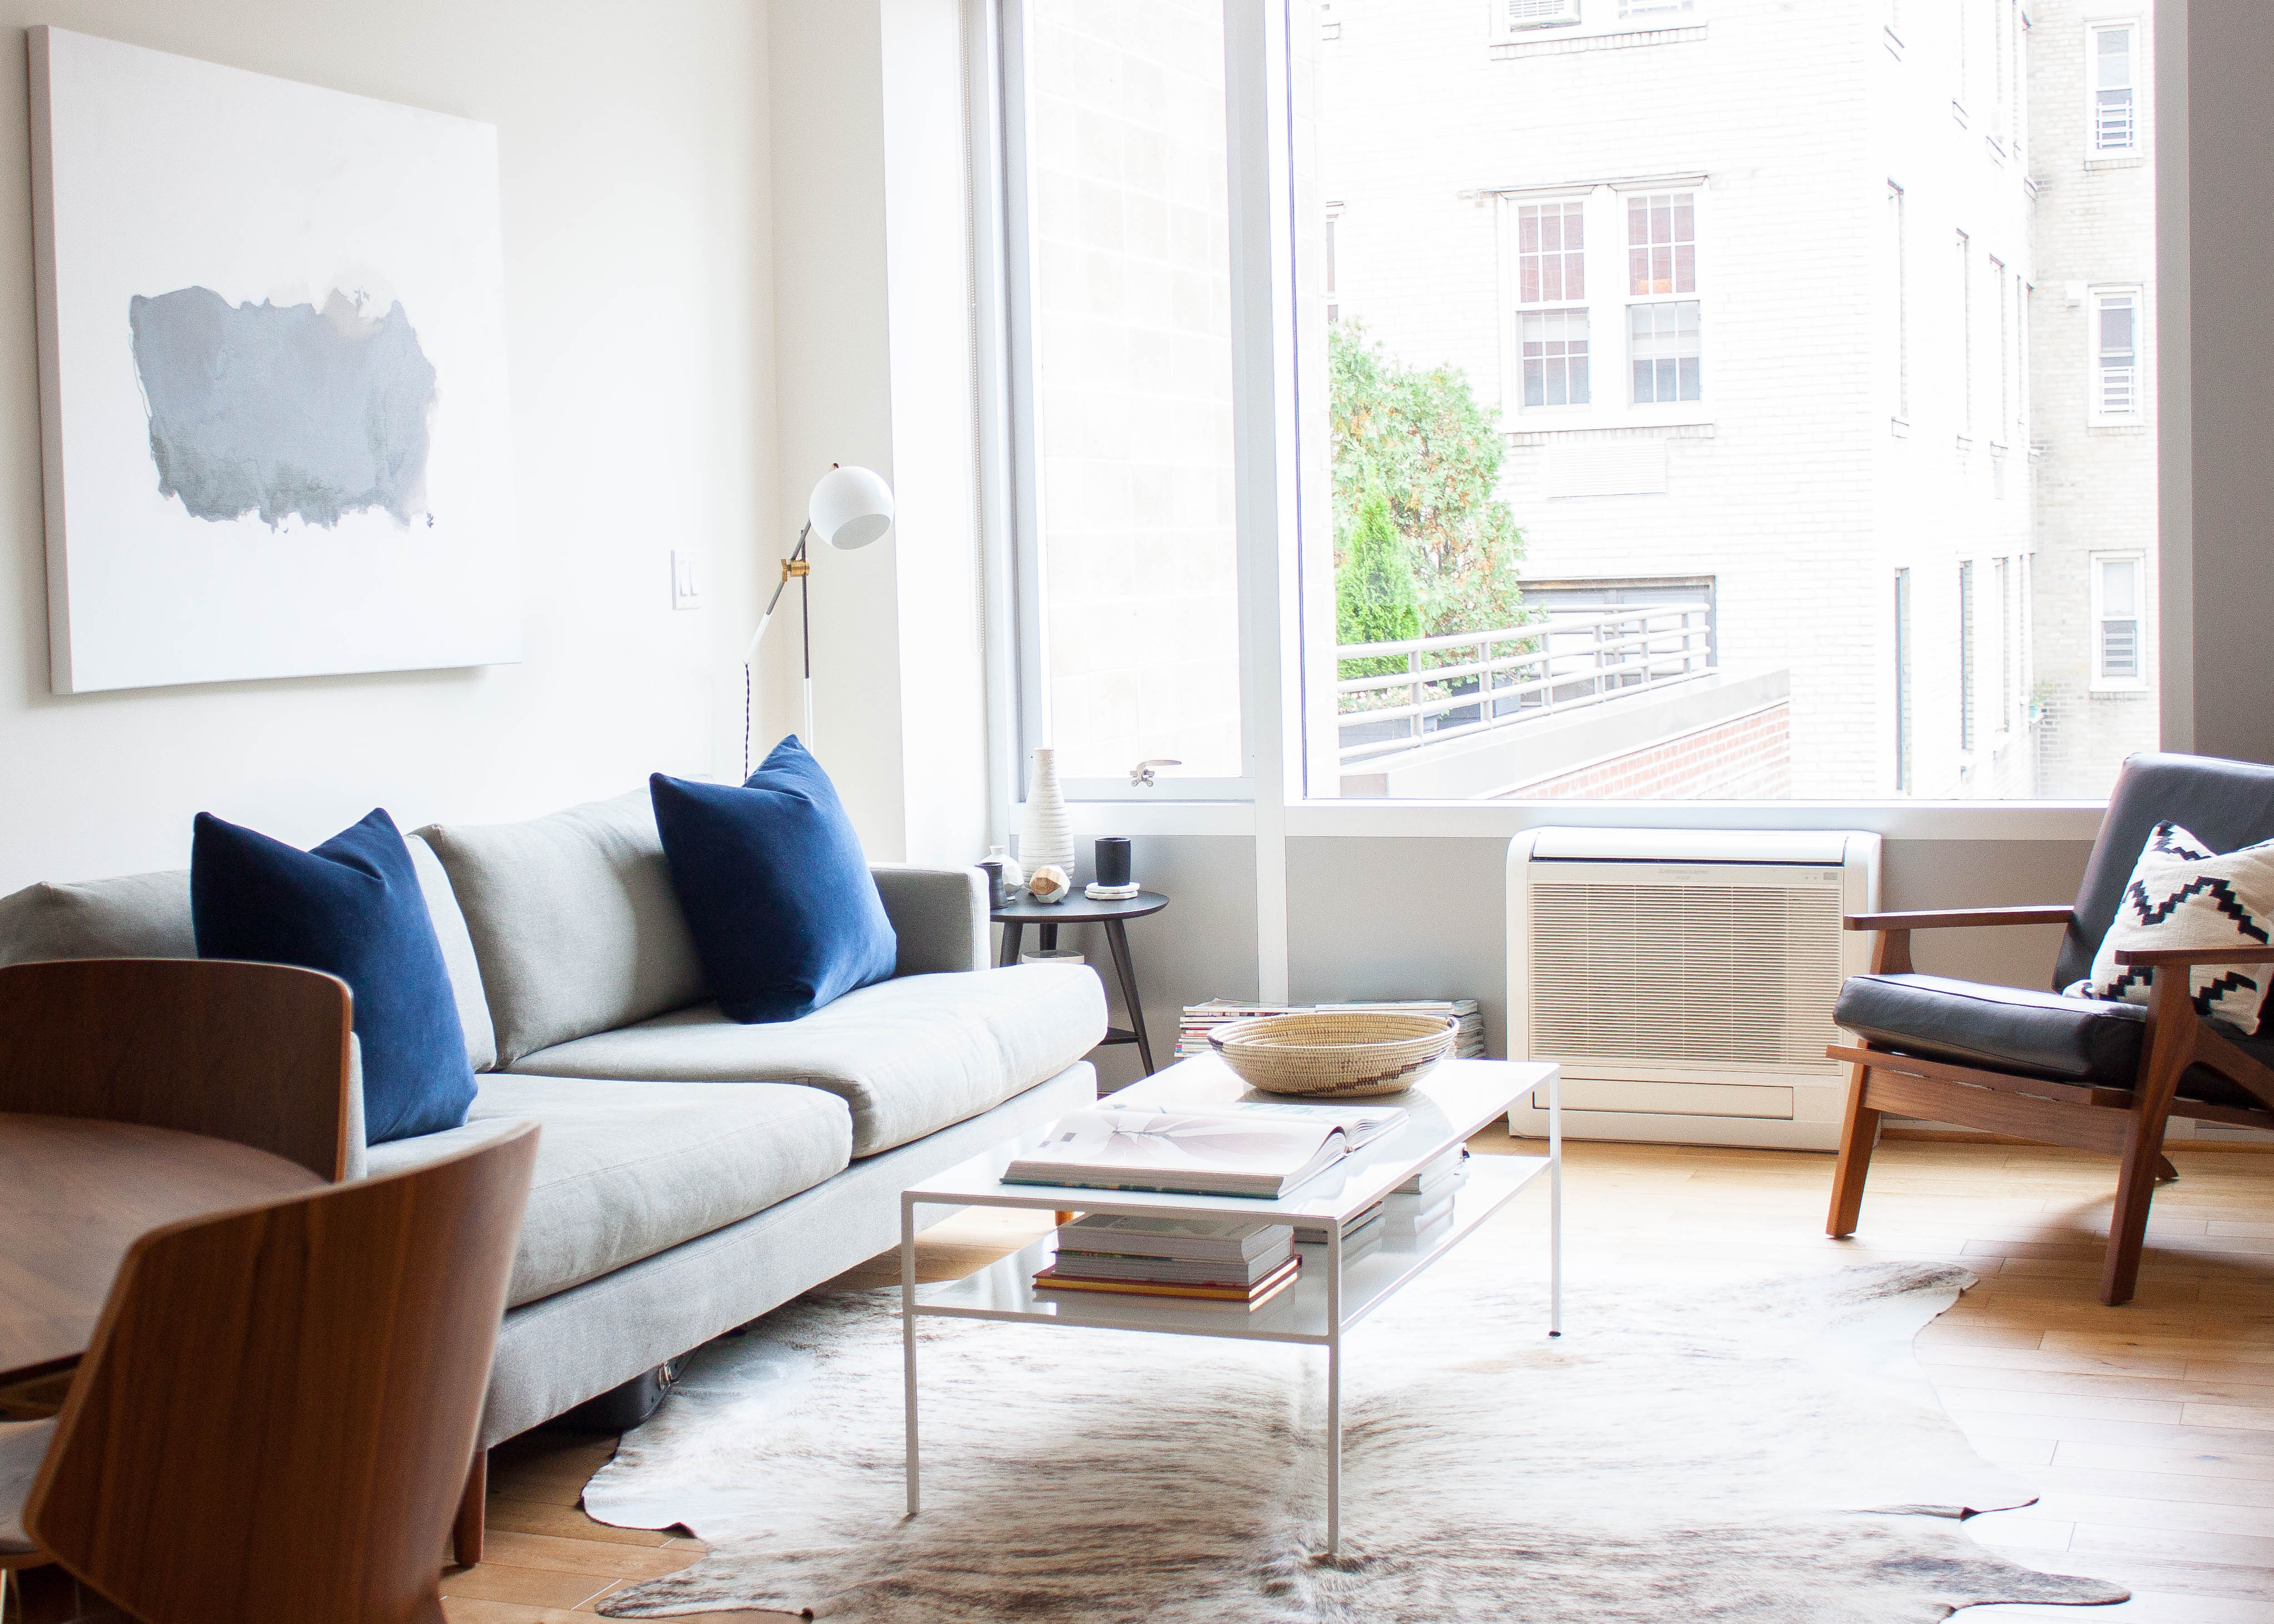 Small Living Room Design Tour: A Minimalist New York City Retreat from Hectic City Life FQAFMGT